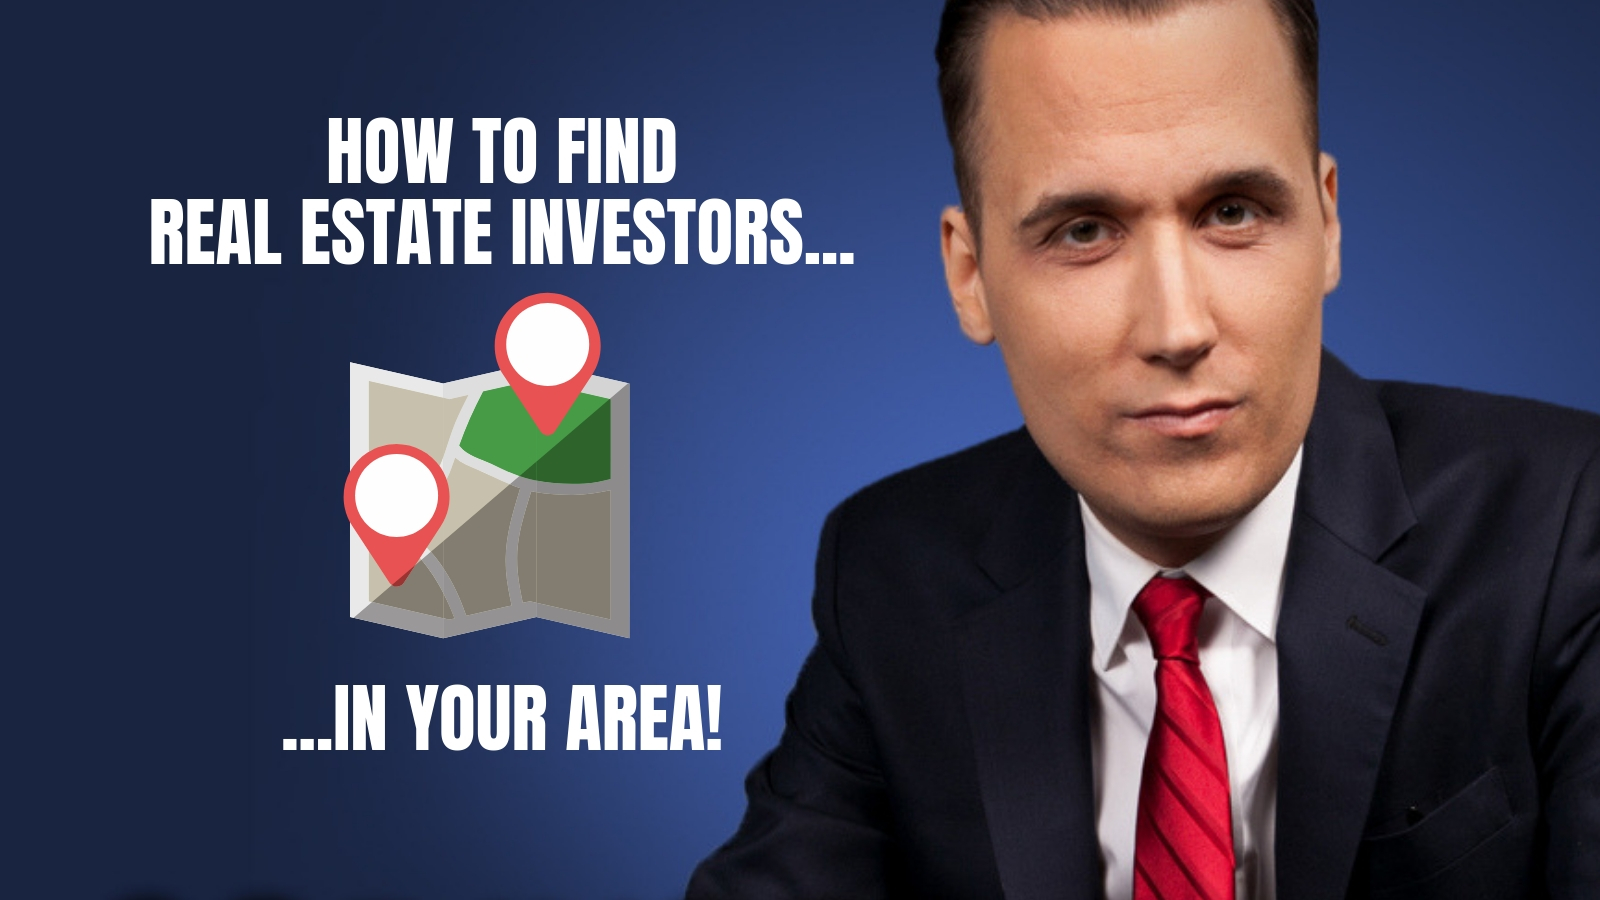 How To Find Real Estate Investors In Your Area